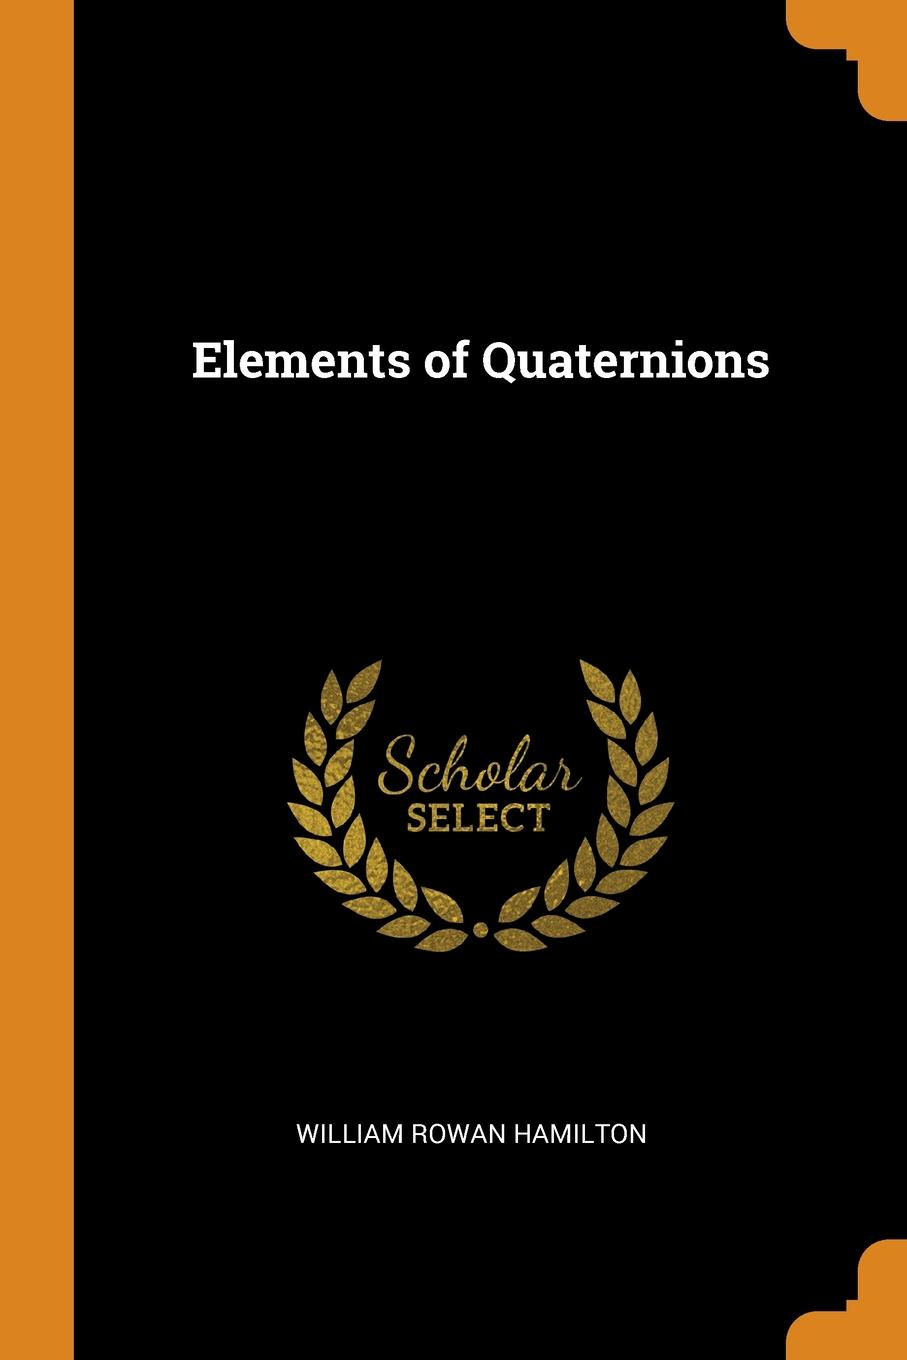 William Rowan Hamilton. Elements of Quaternions